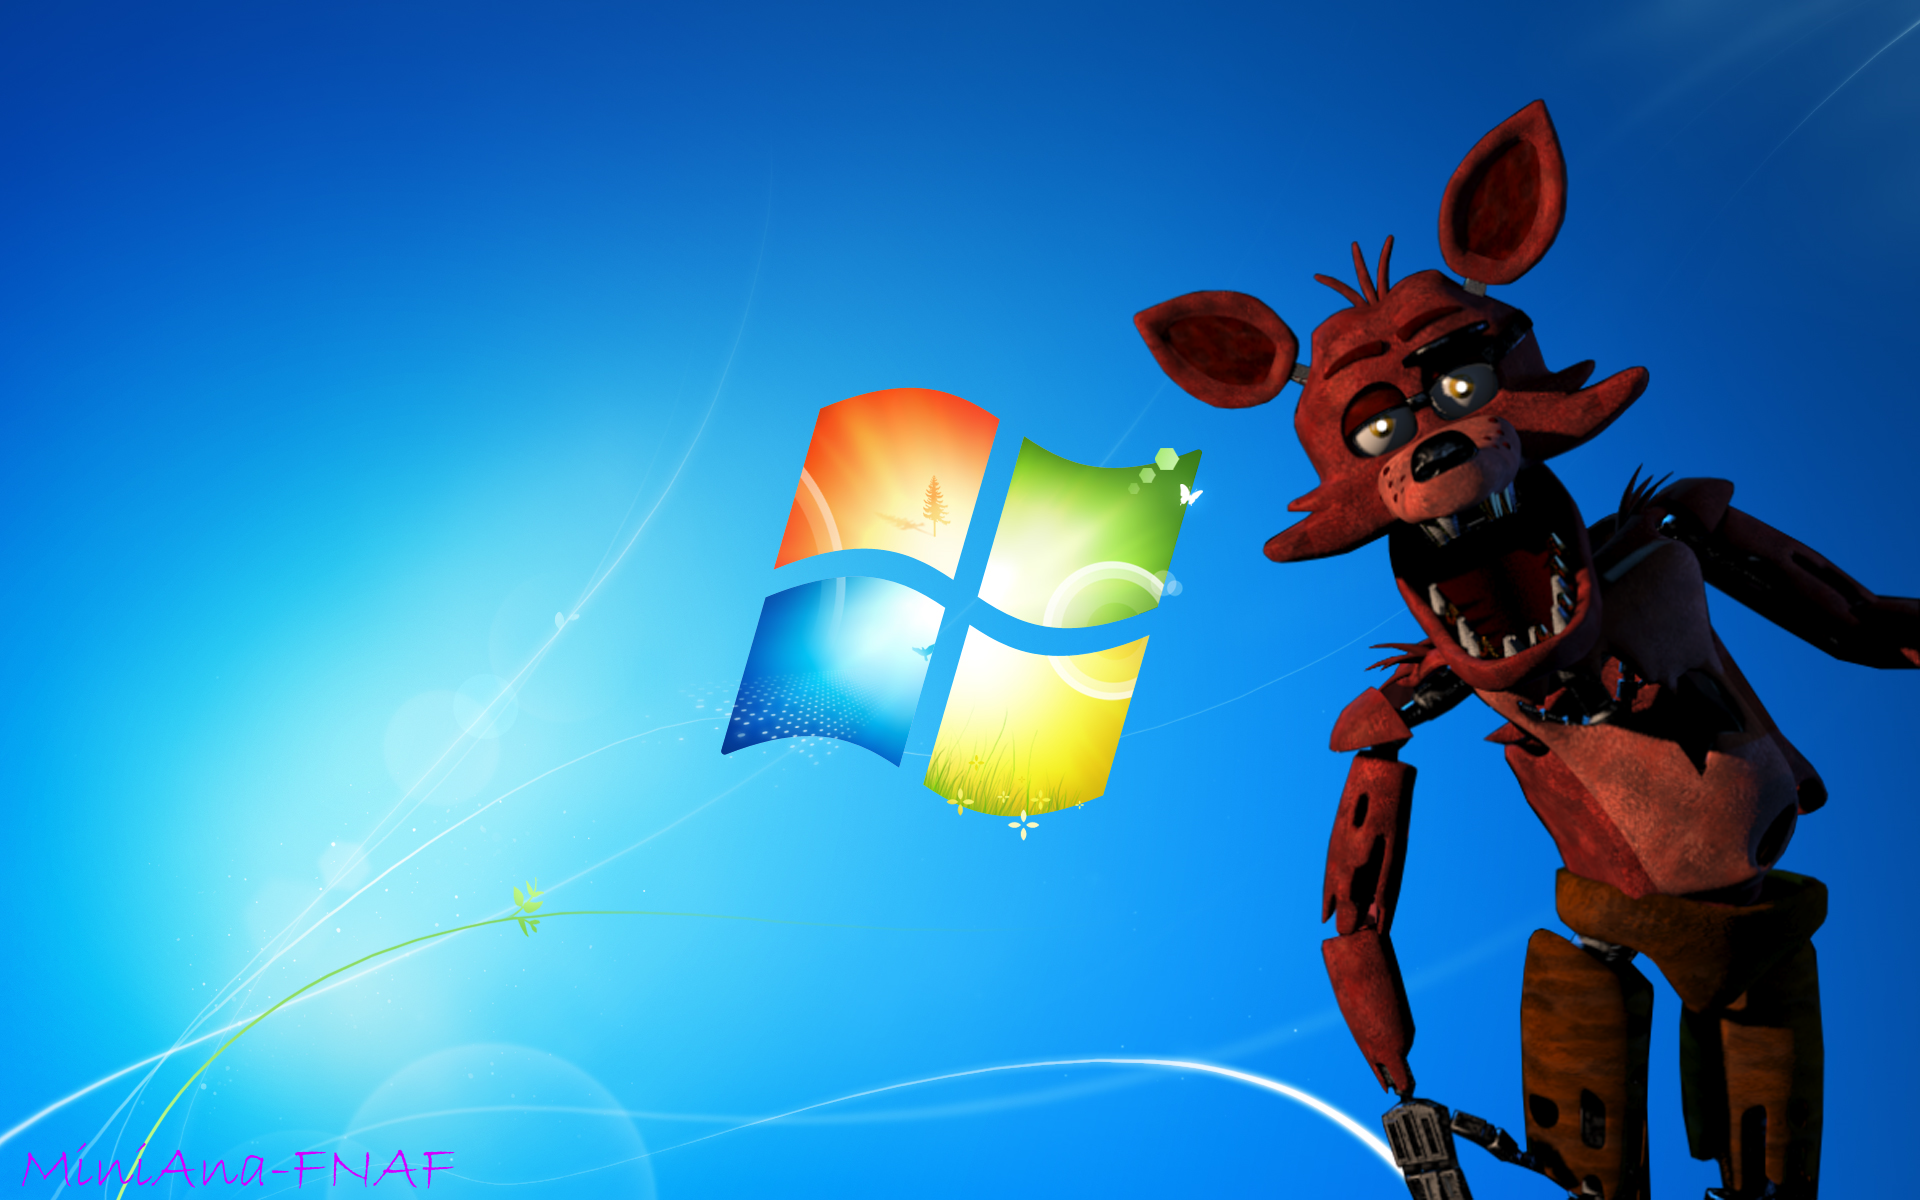 FNAF WALLPAER Foxy the fox Windows 7 by MiniAna Fnaf 1920x1200